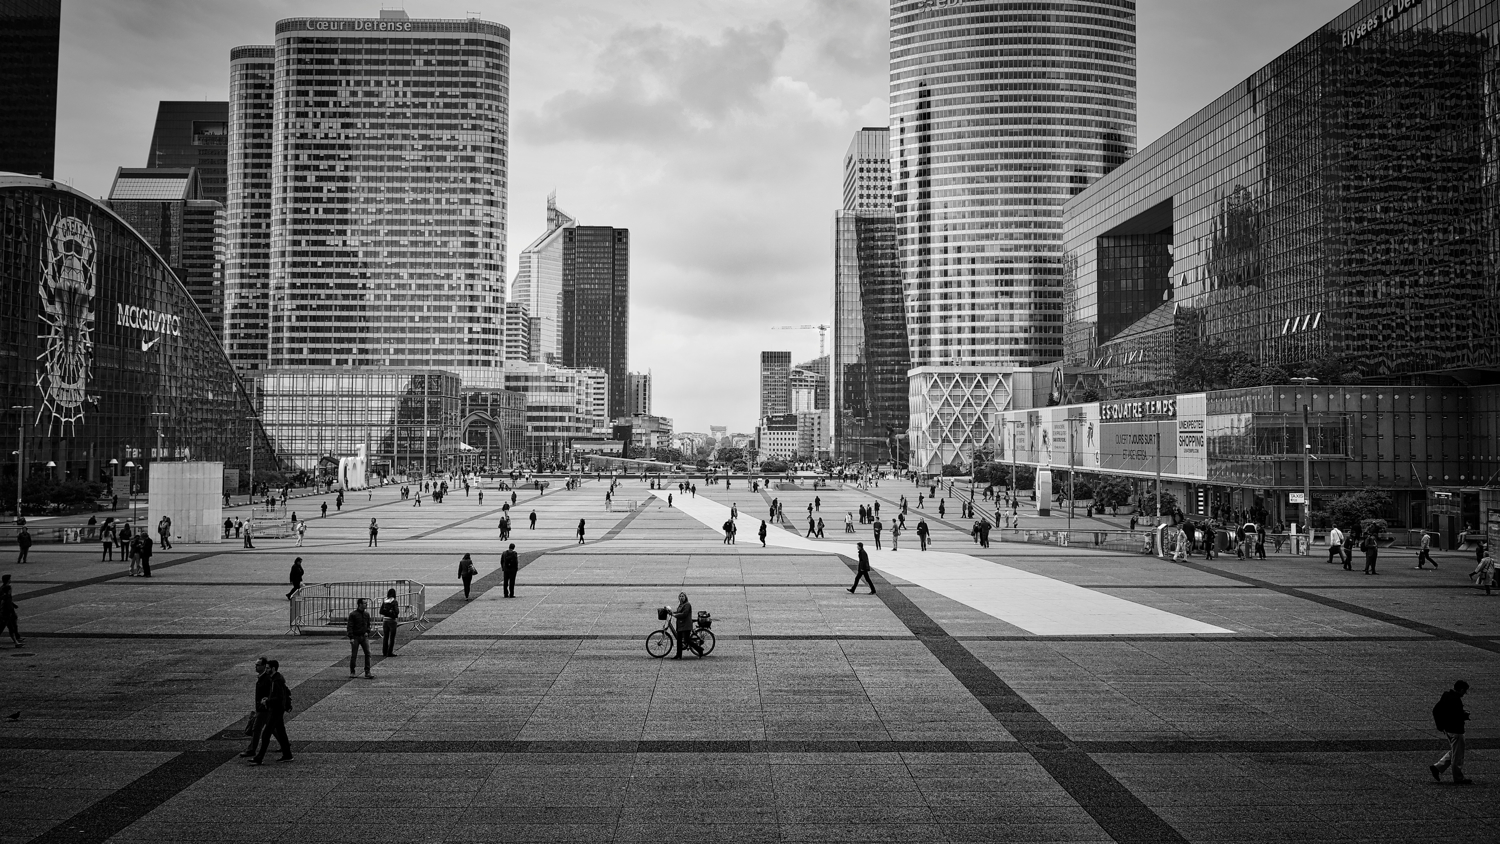 Welcome Paris La Défense.    Paris La Défense | Puteaux | Courbevoie | France    Sony A7 | 35mmƒ2.8 Carl Zeiss   Photos   sur le site 500px      ©Thierry Lothon 2014.